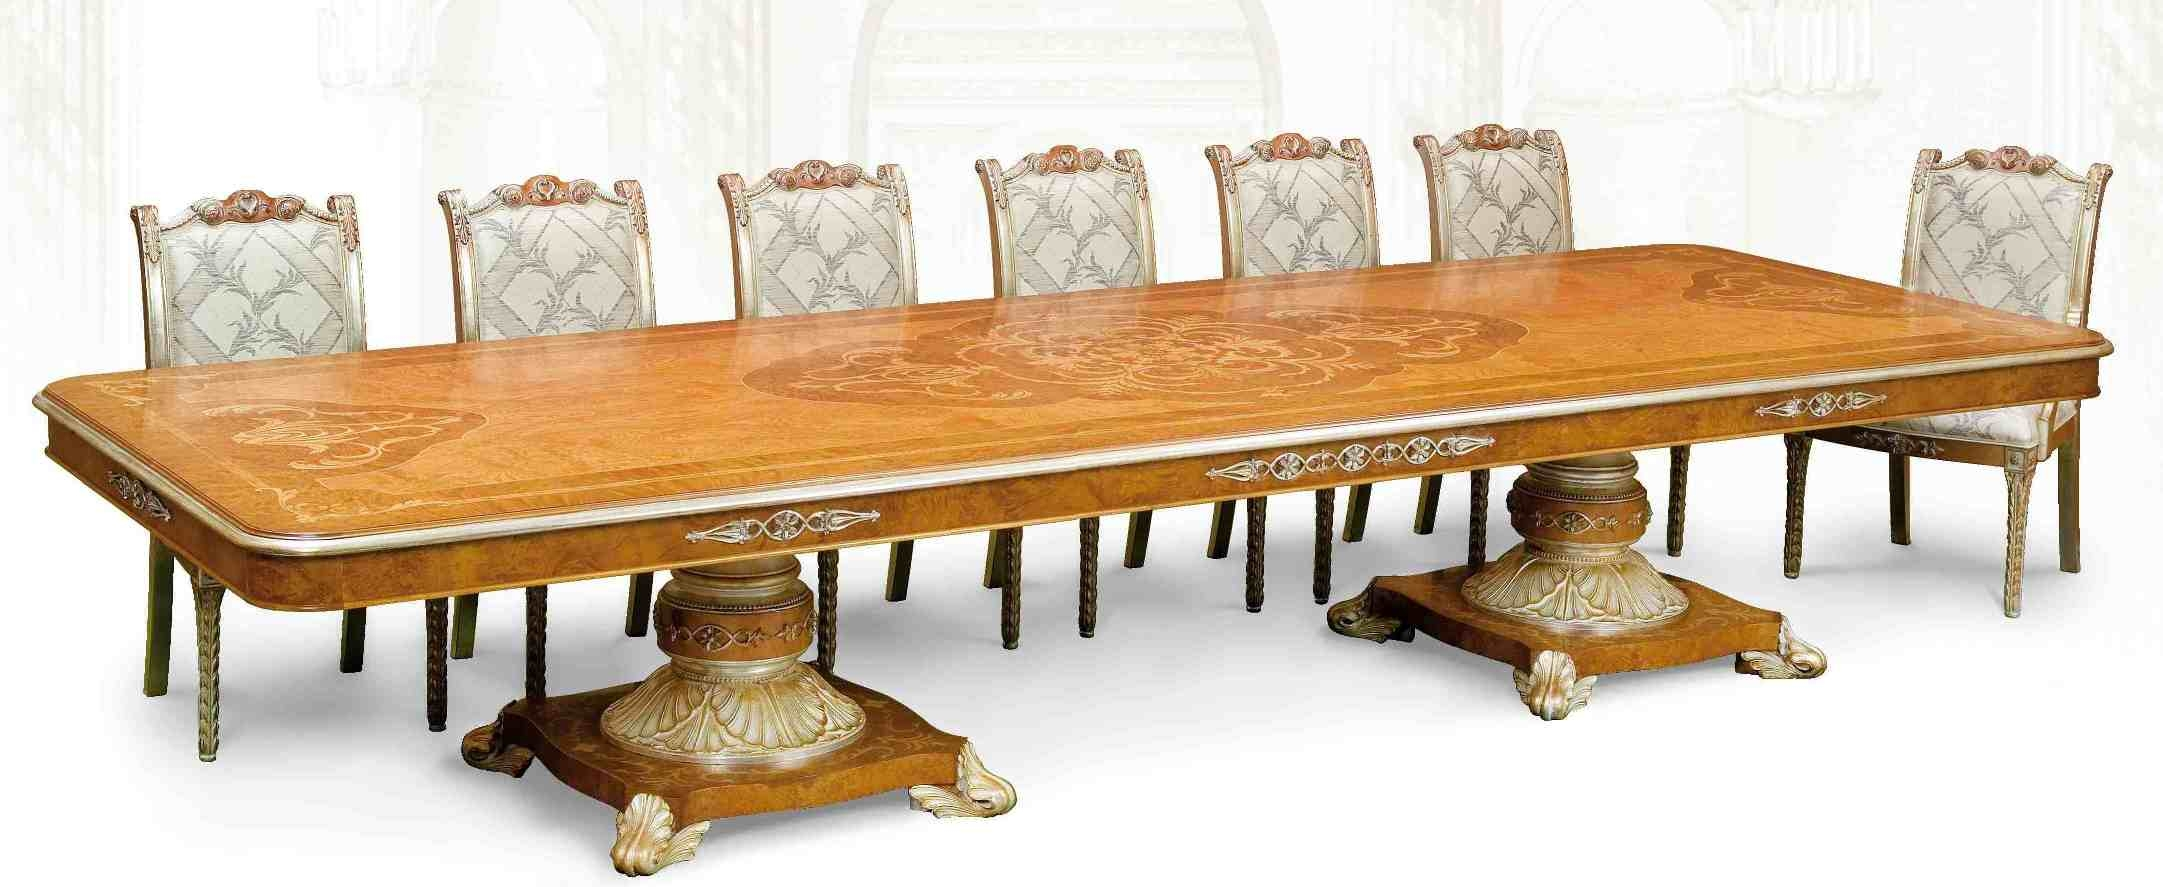 11 luxury dining furniture exquisite marquetry work